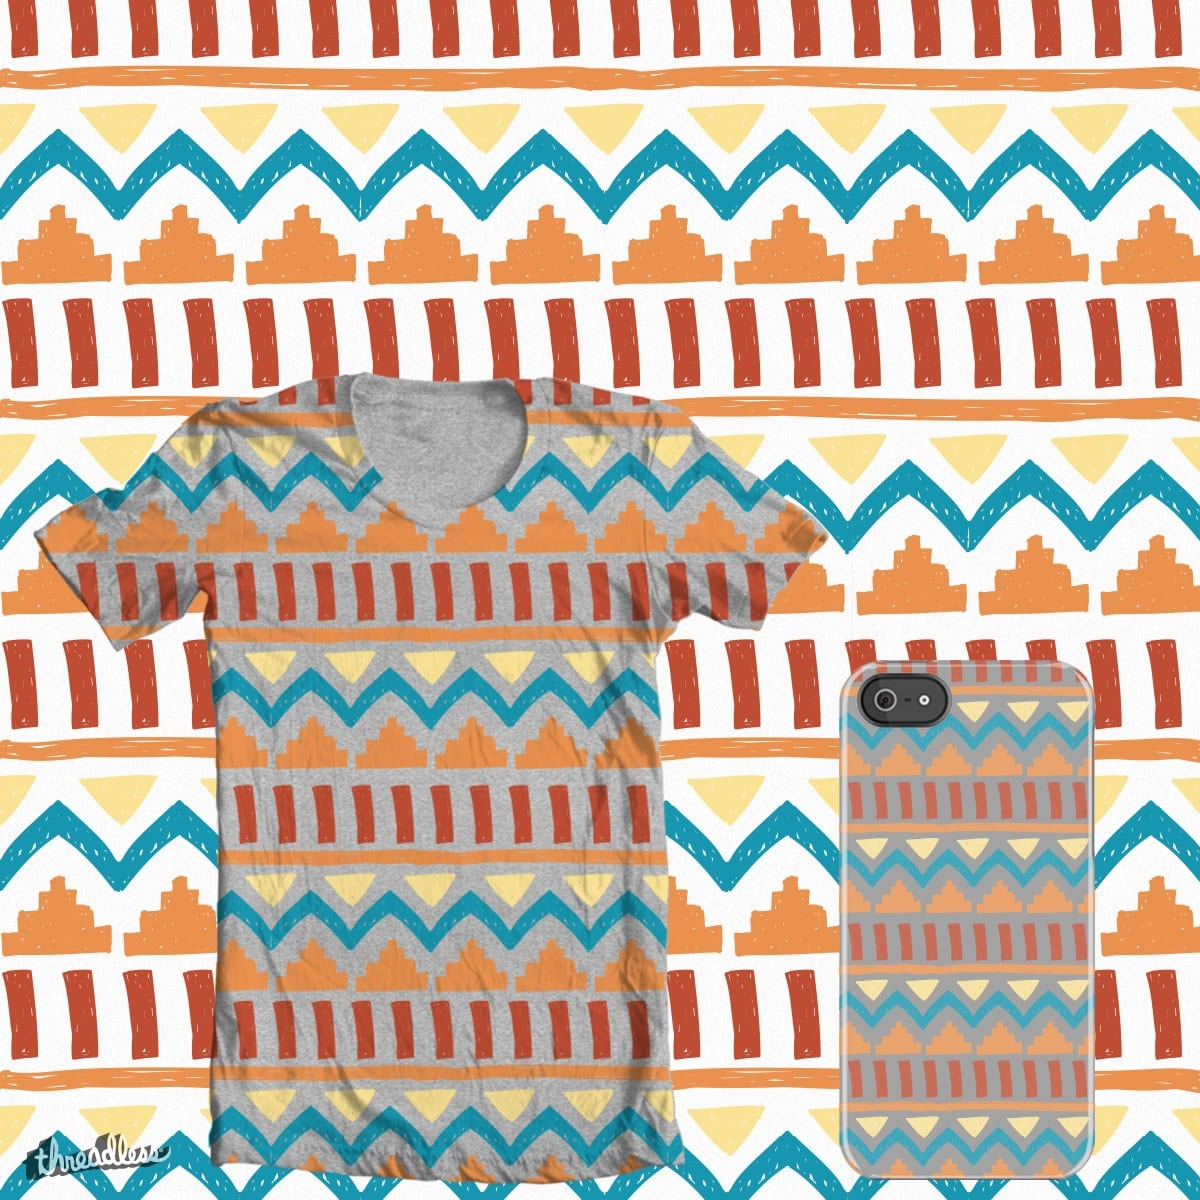 Aztec Pattern by JEMcintosh on Threadless